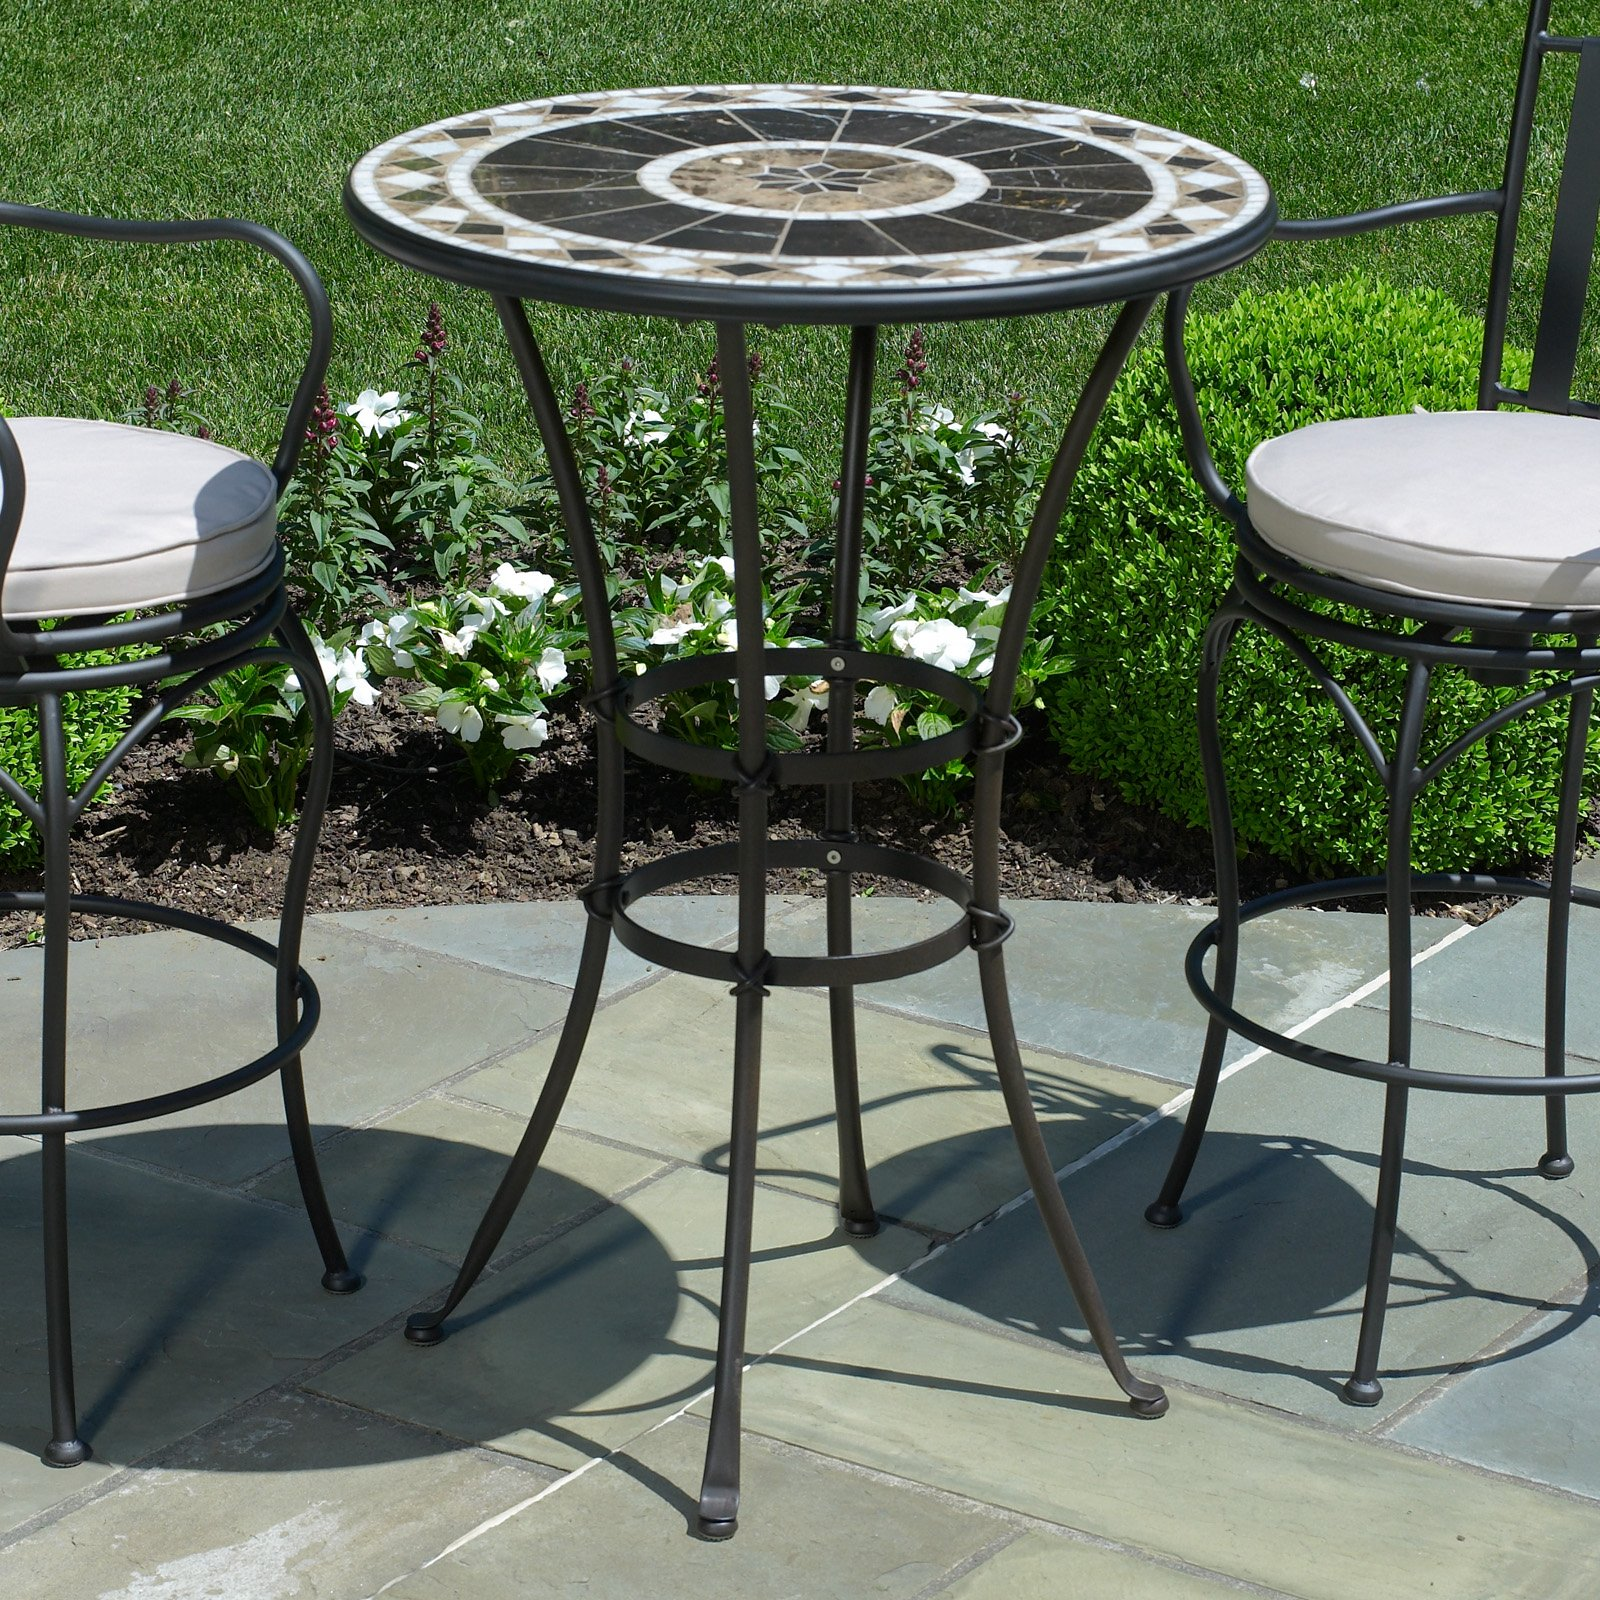 small patio table small round patio table and chairs target outdoor furniture VIAEZIN